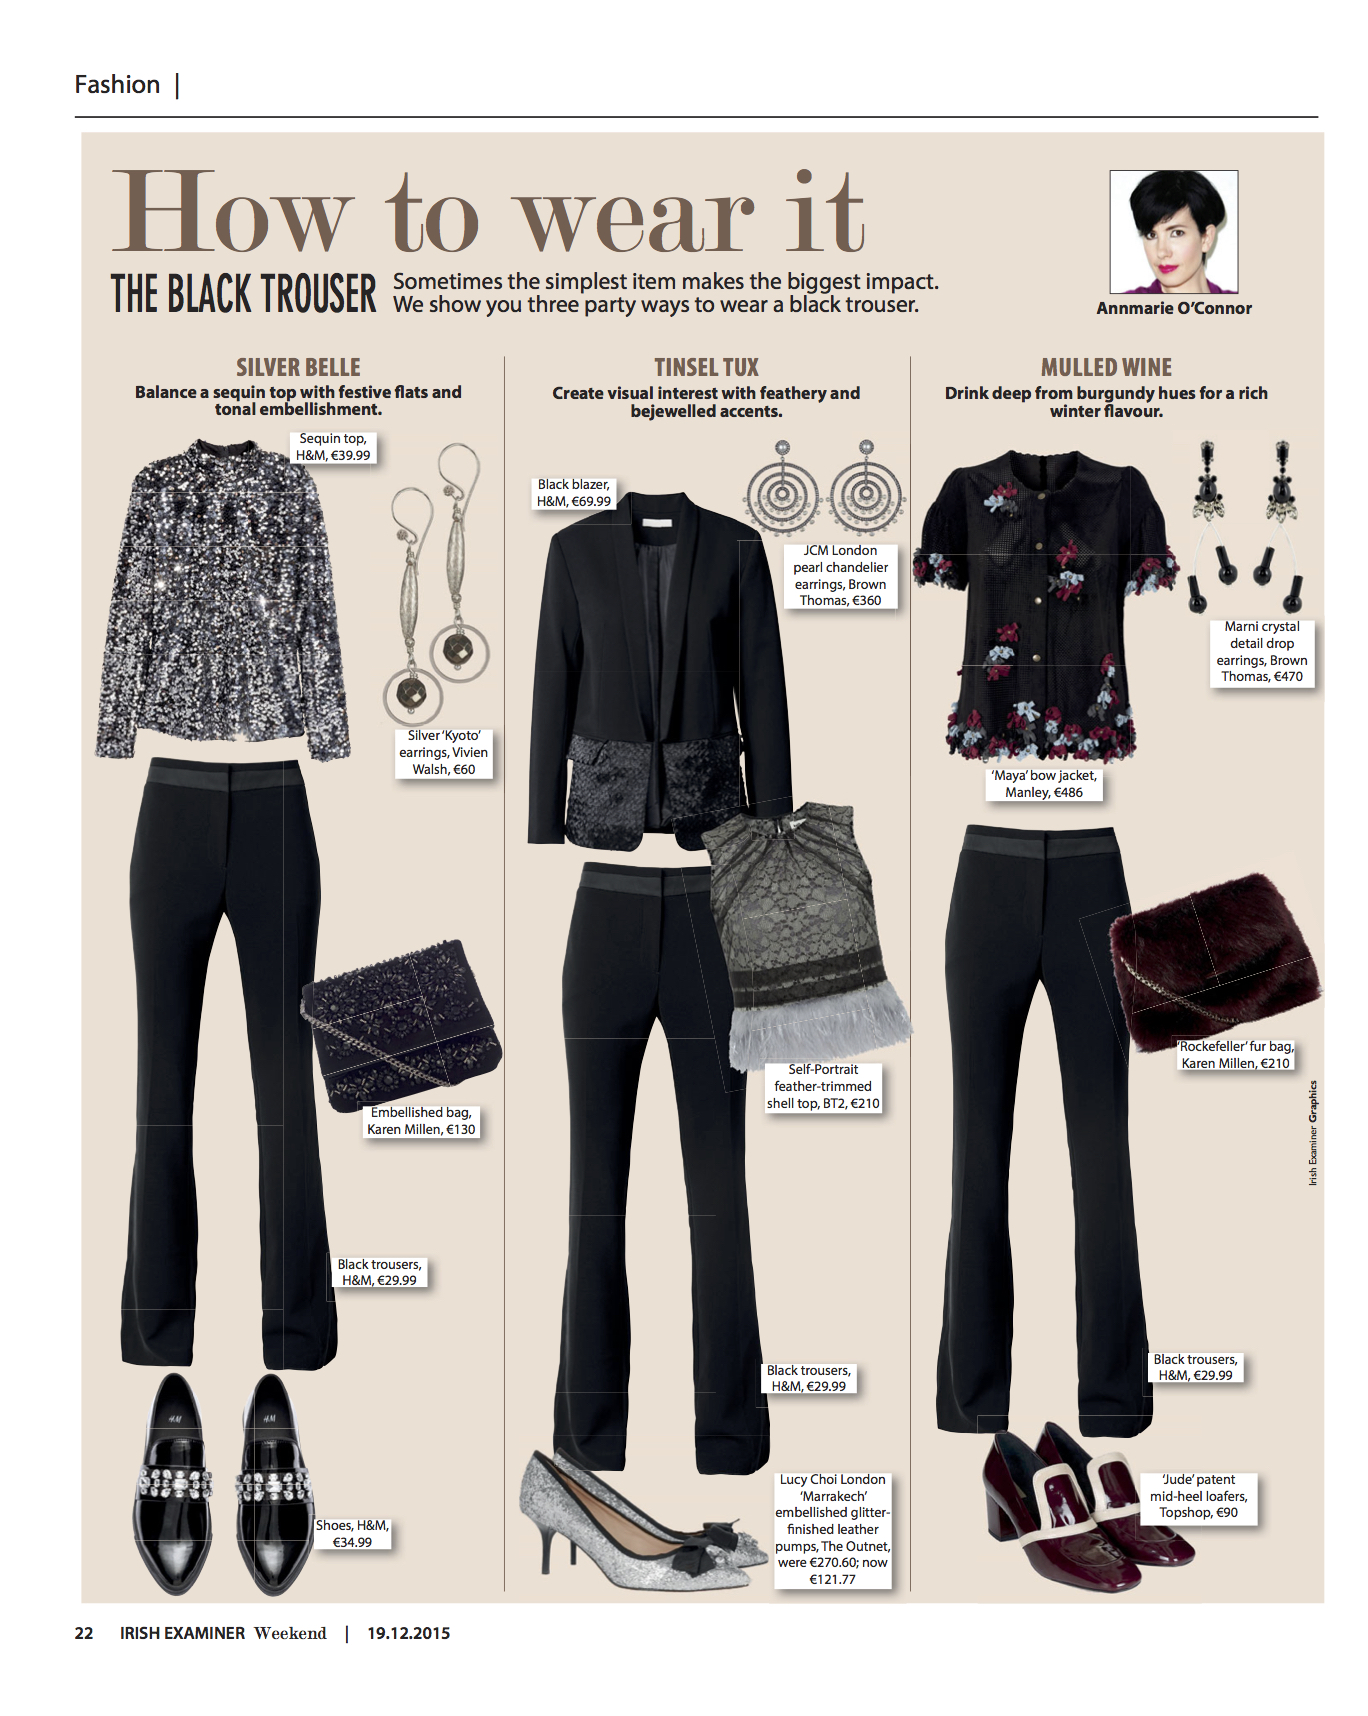 Irish Examiner 'How to Wear it' - Dec 2015 copy.jpg